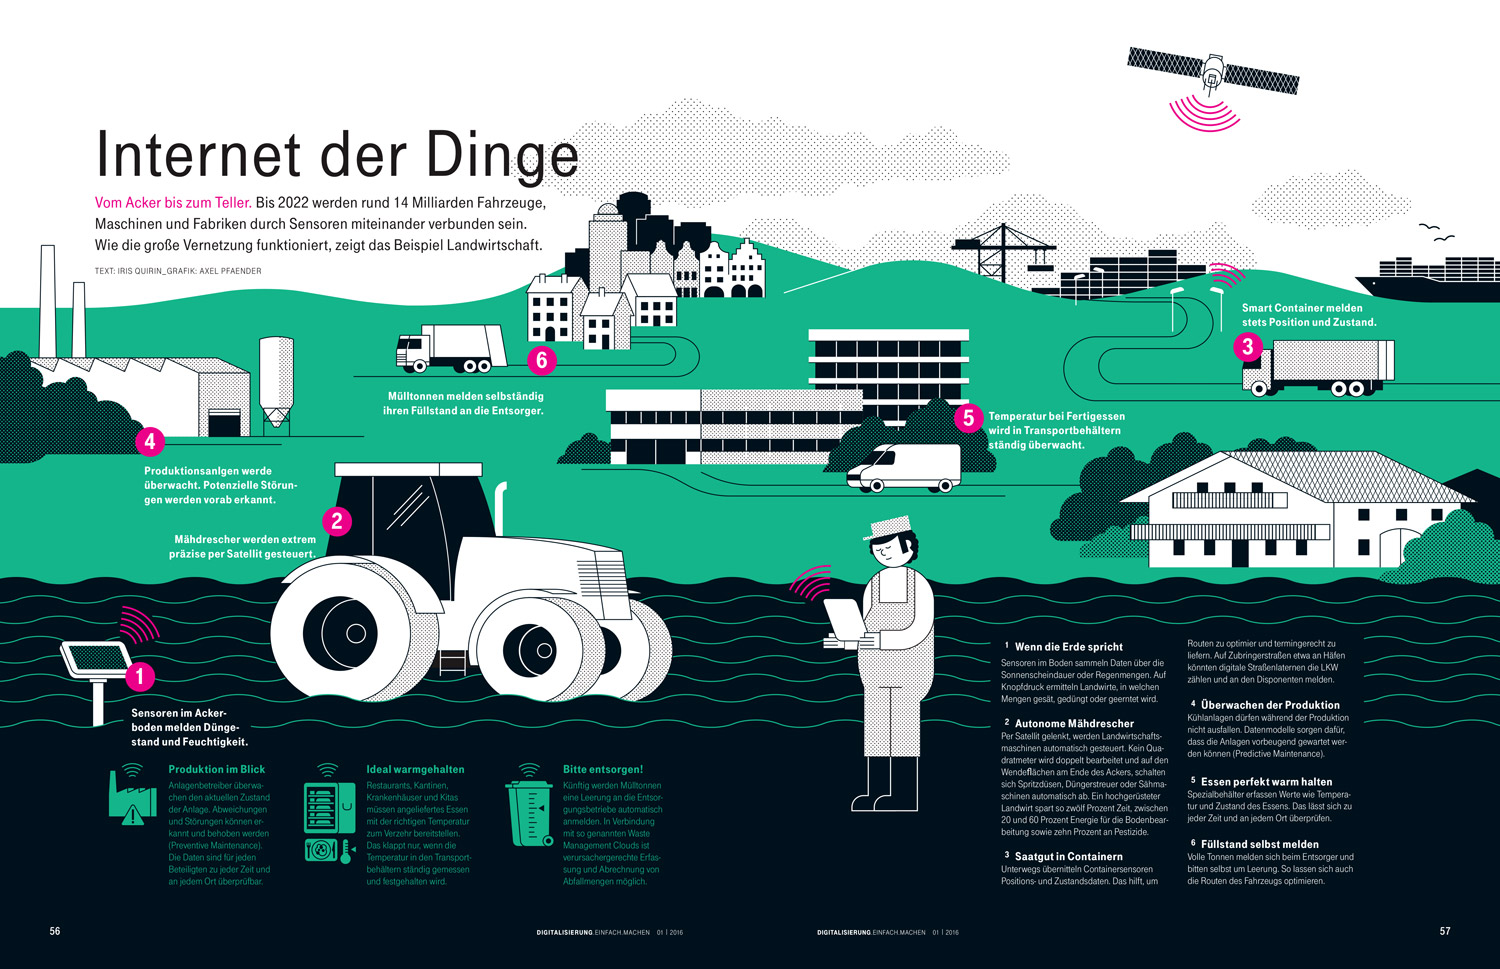 Detail from Internet of Things, Illustration by Axel Pfaender for Deutsche Telekom